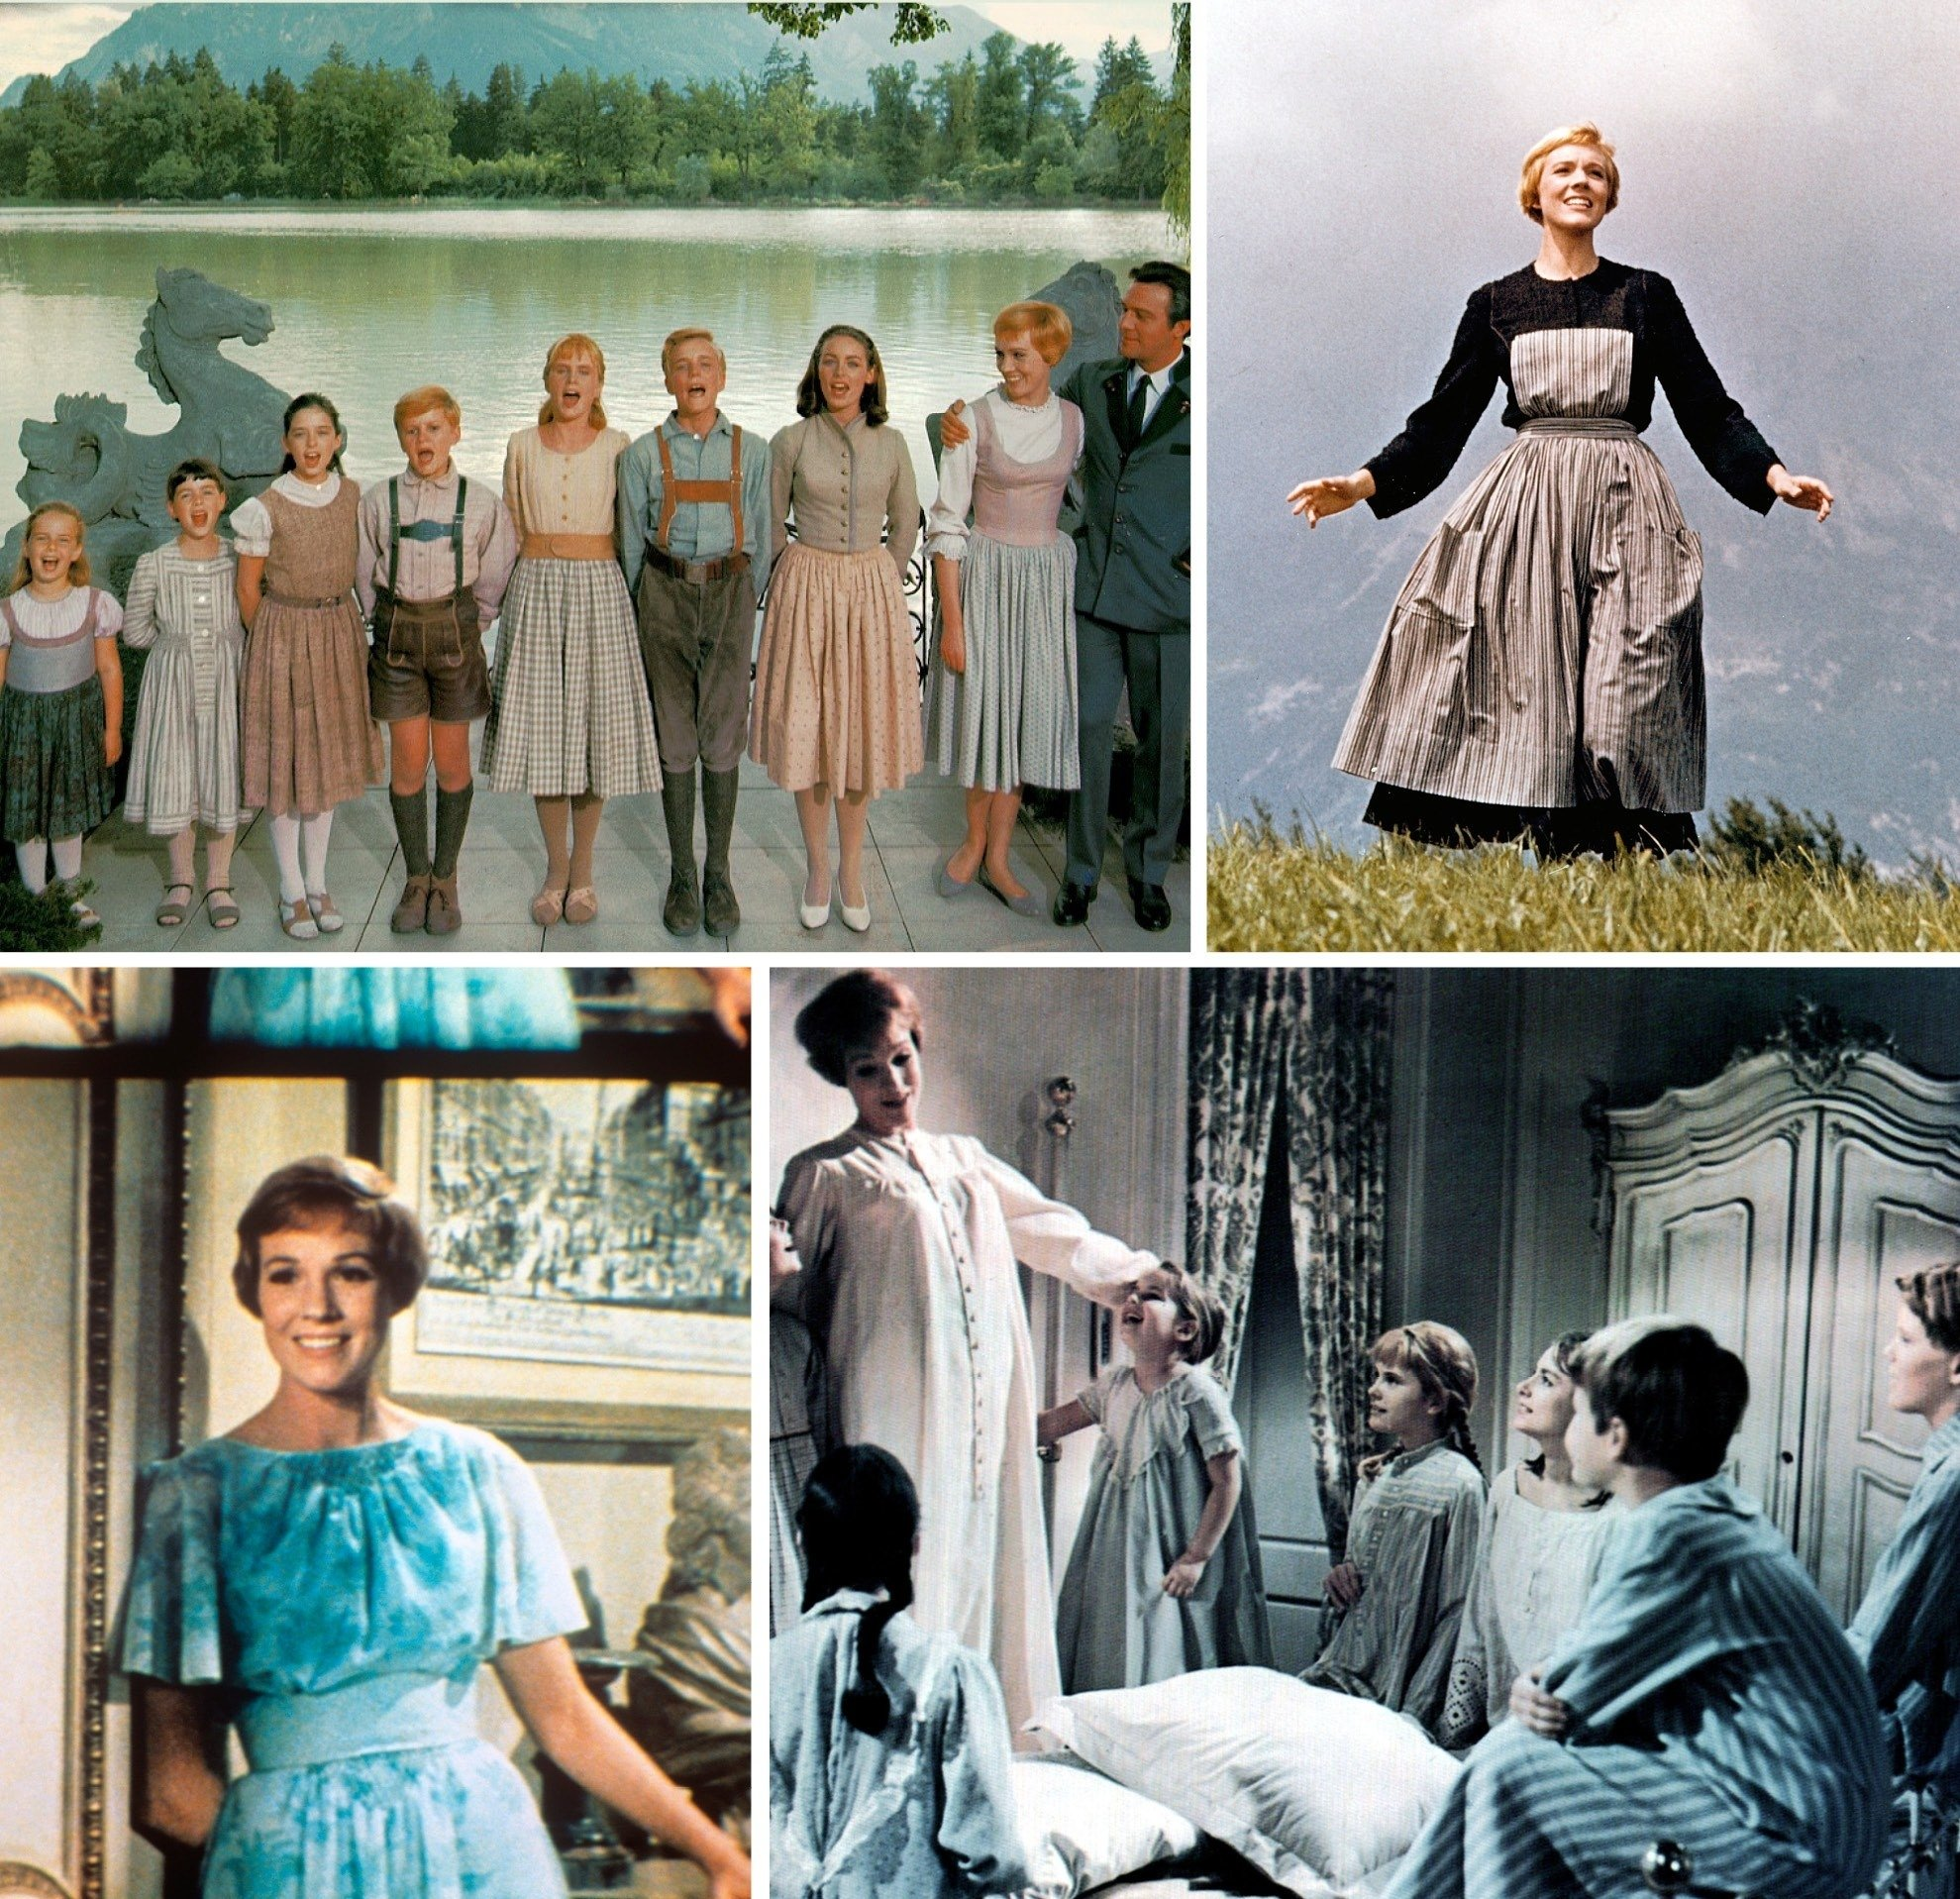 10 Most Recommended Sound Of Music Costume Ideas julie andrews wedding dress sound of music wedding dress wedding 2020